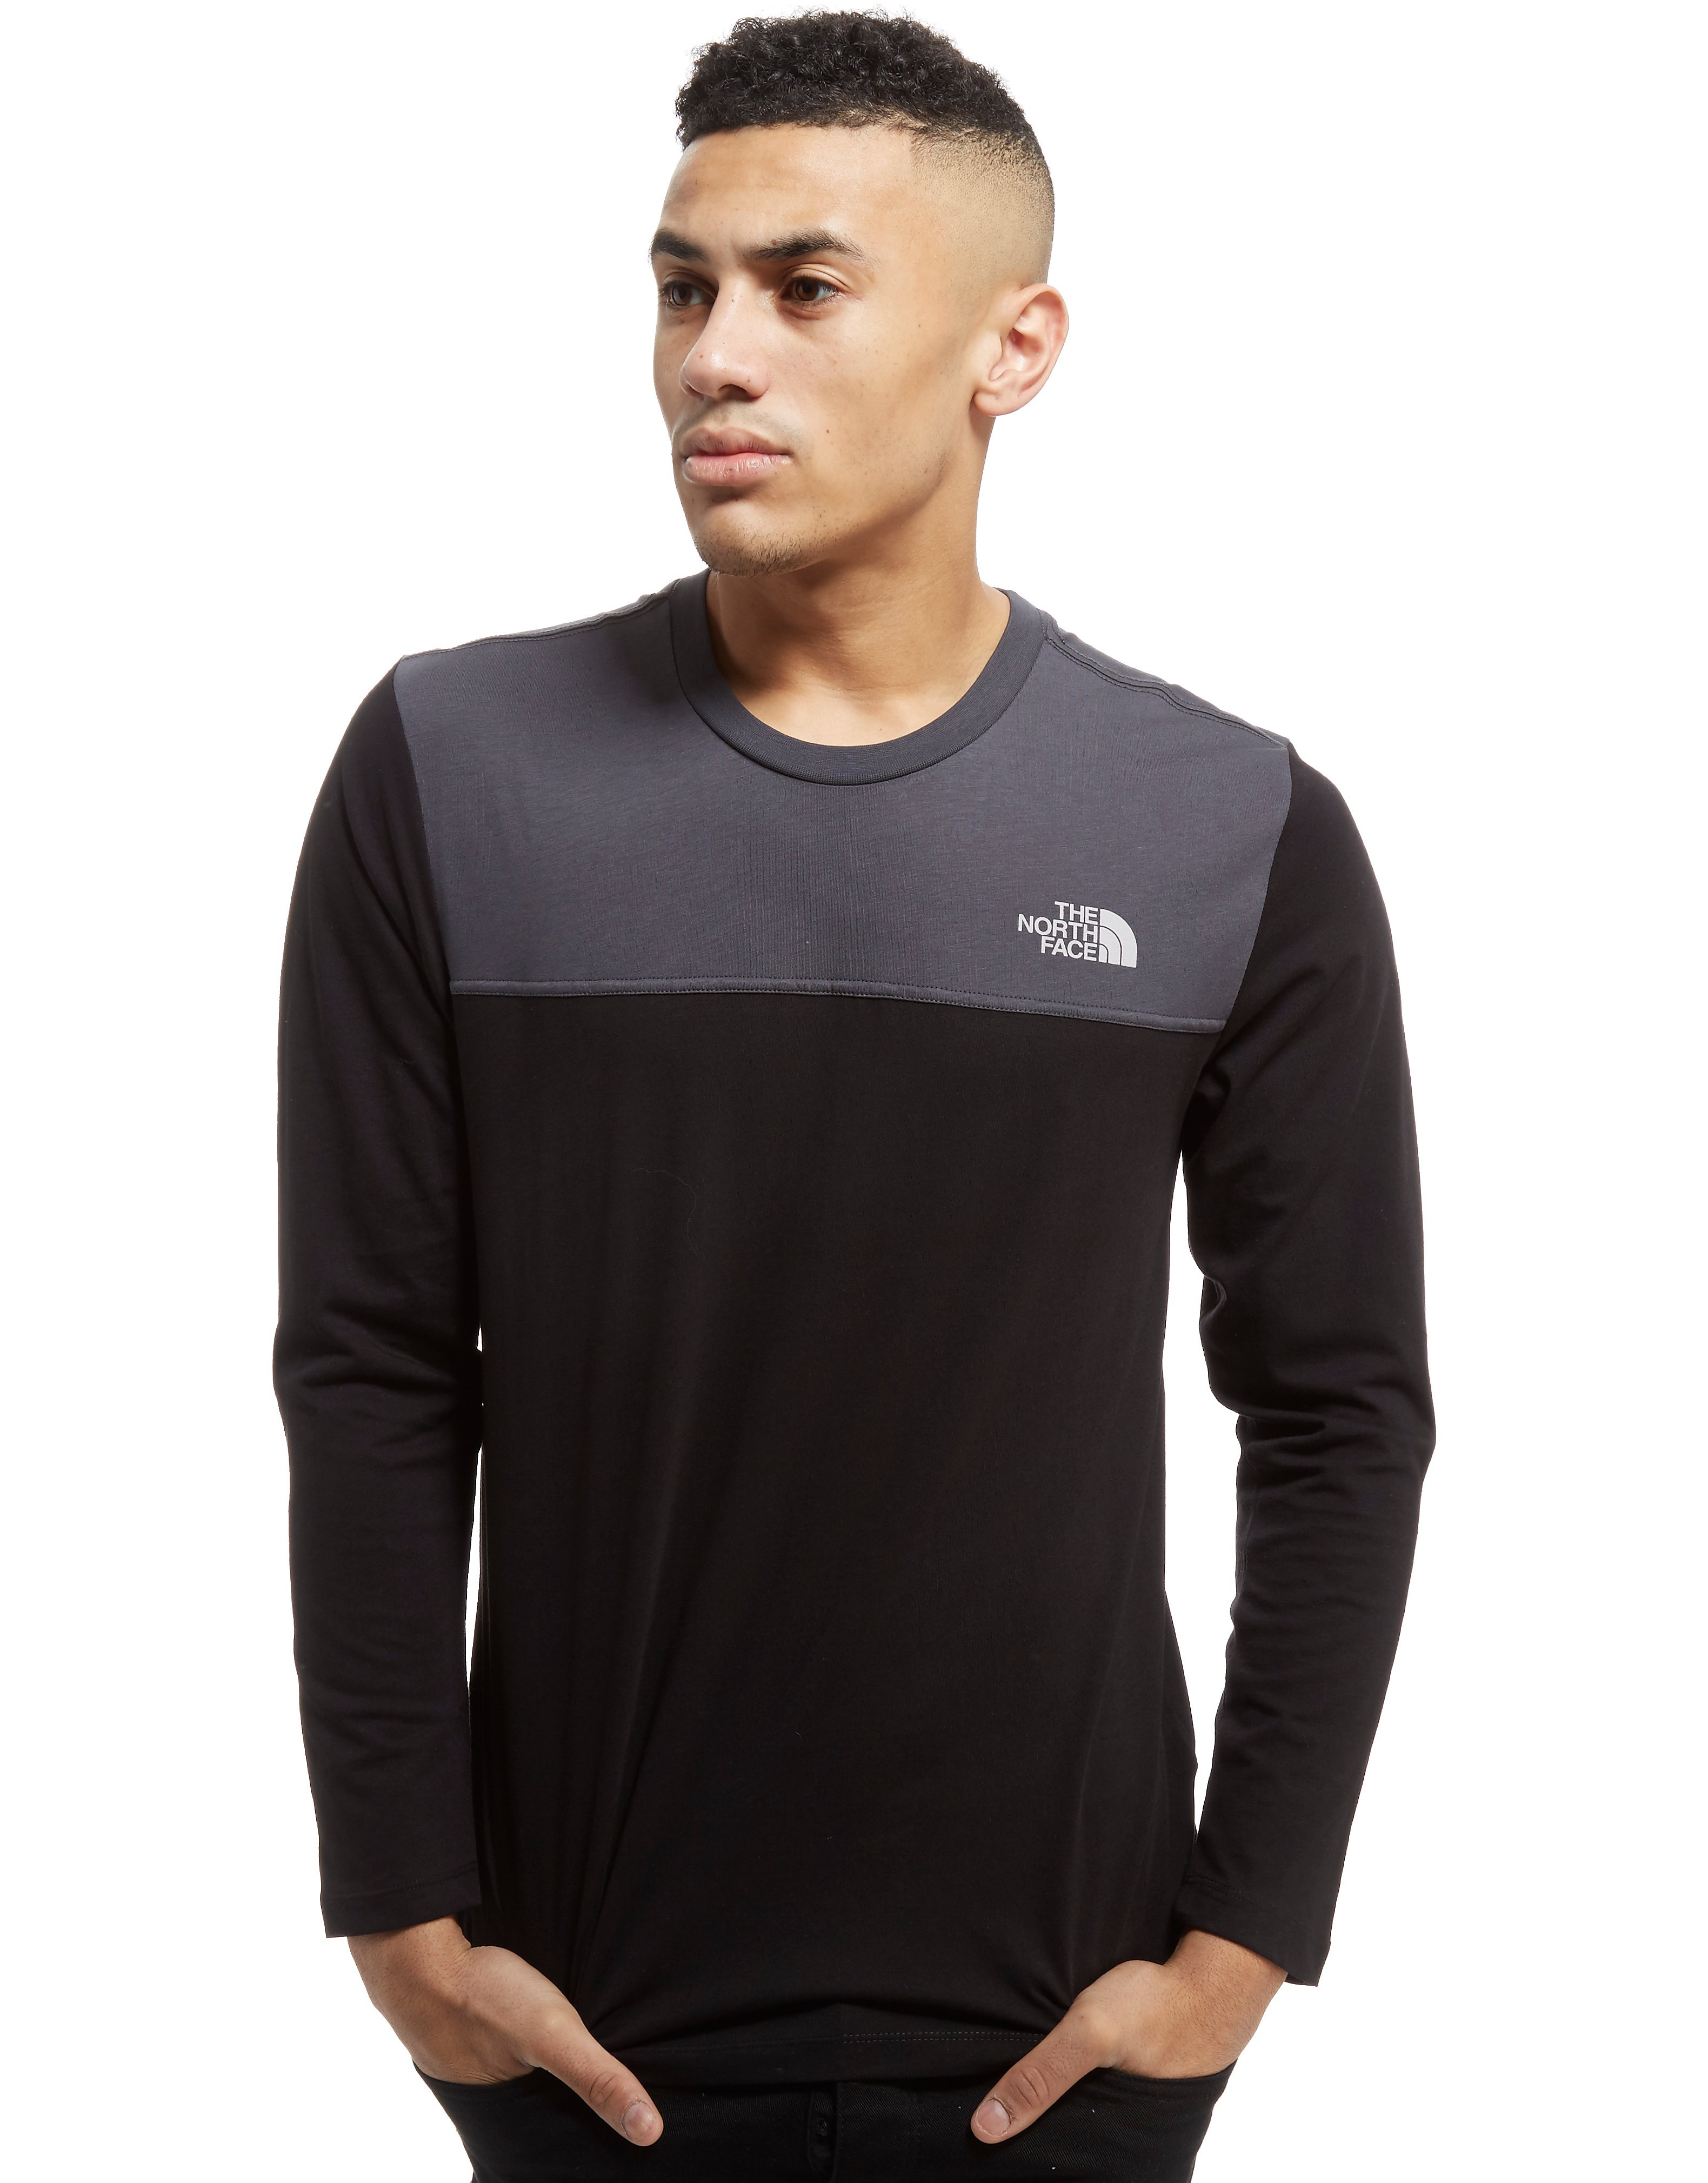 The North Face Colourblock Long Sleeve T-Shirt